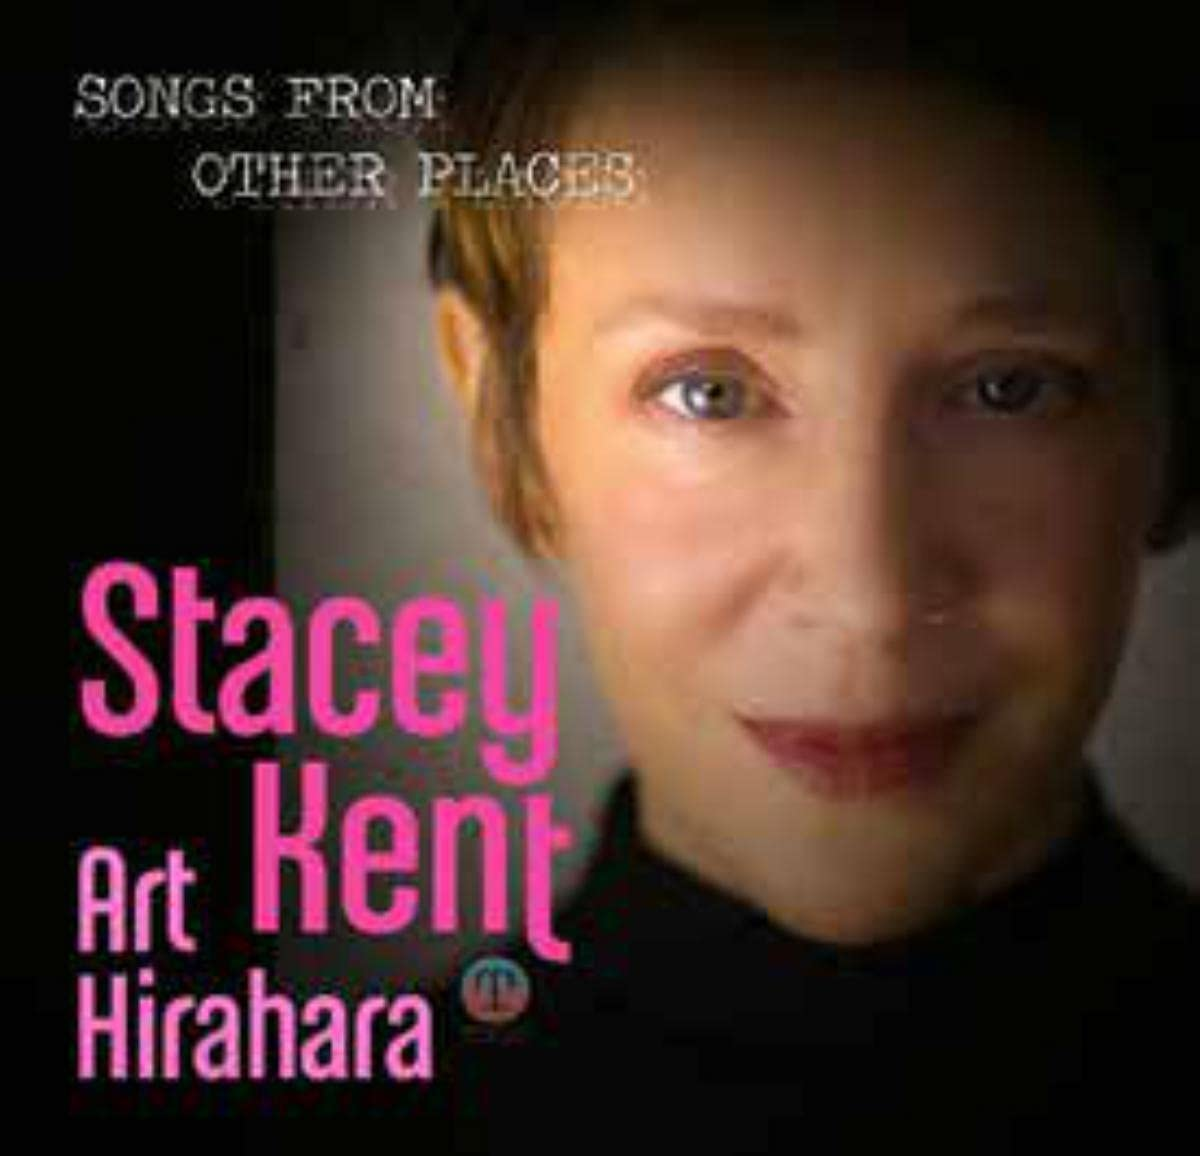 STACEY KENT - Songs From Other Places cover